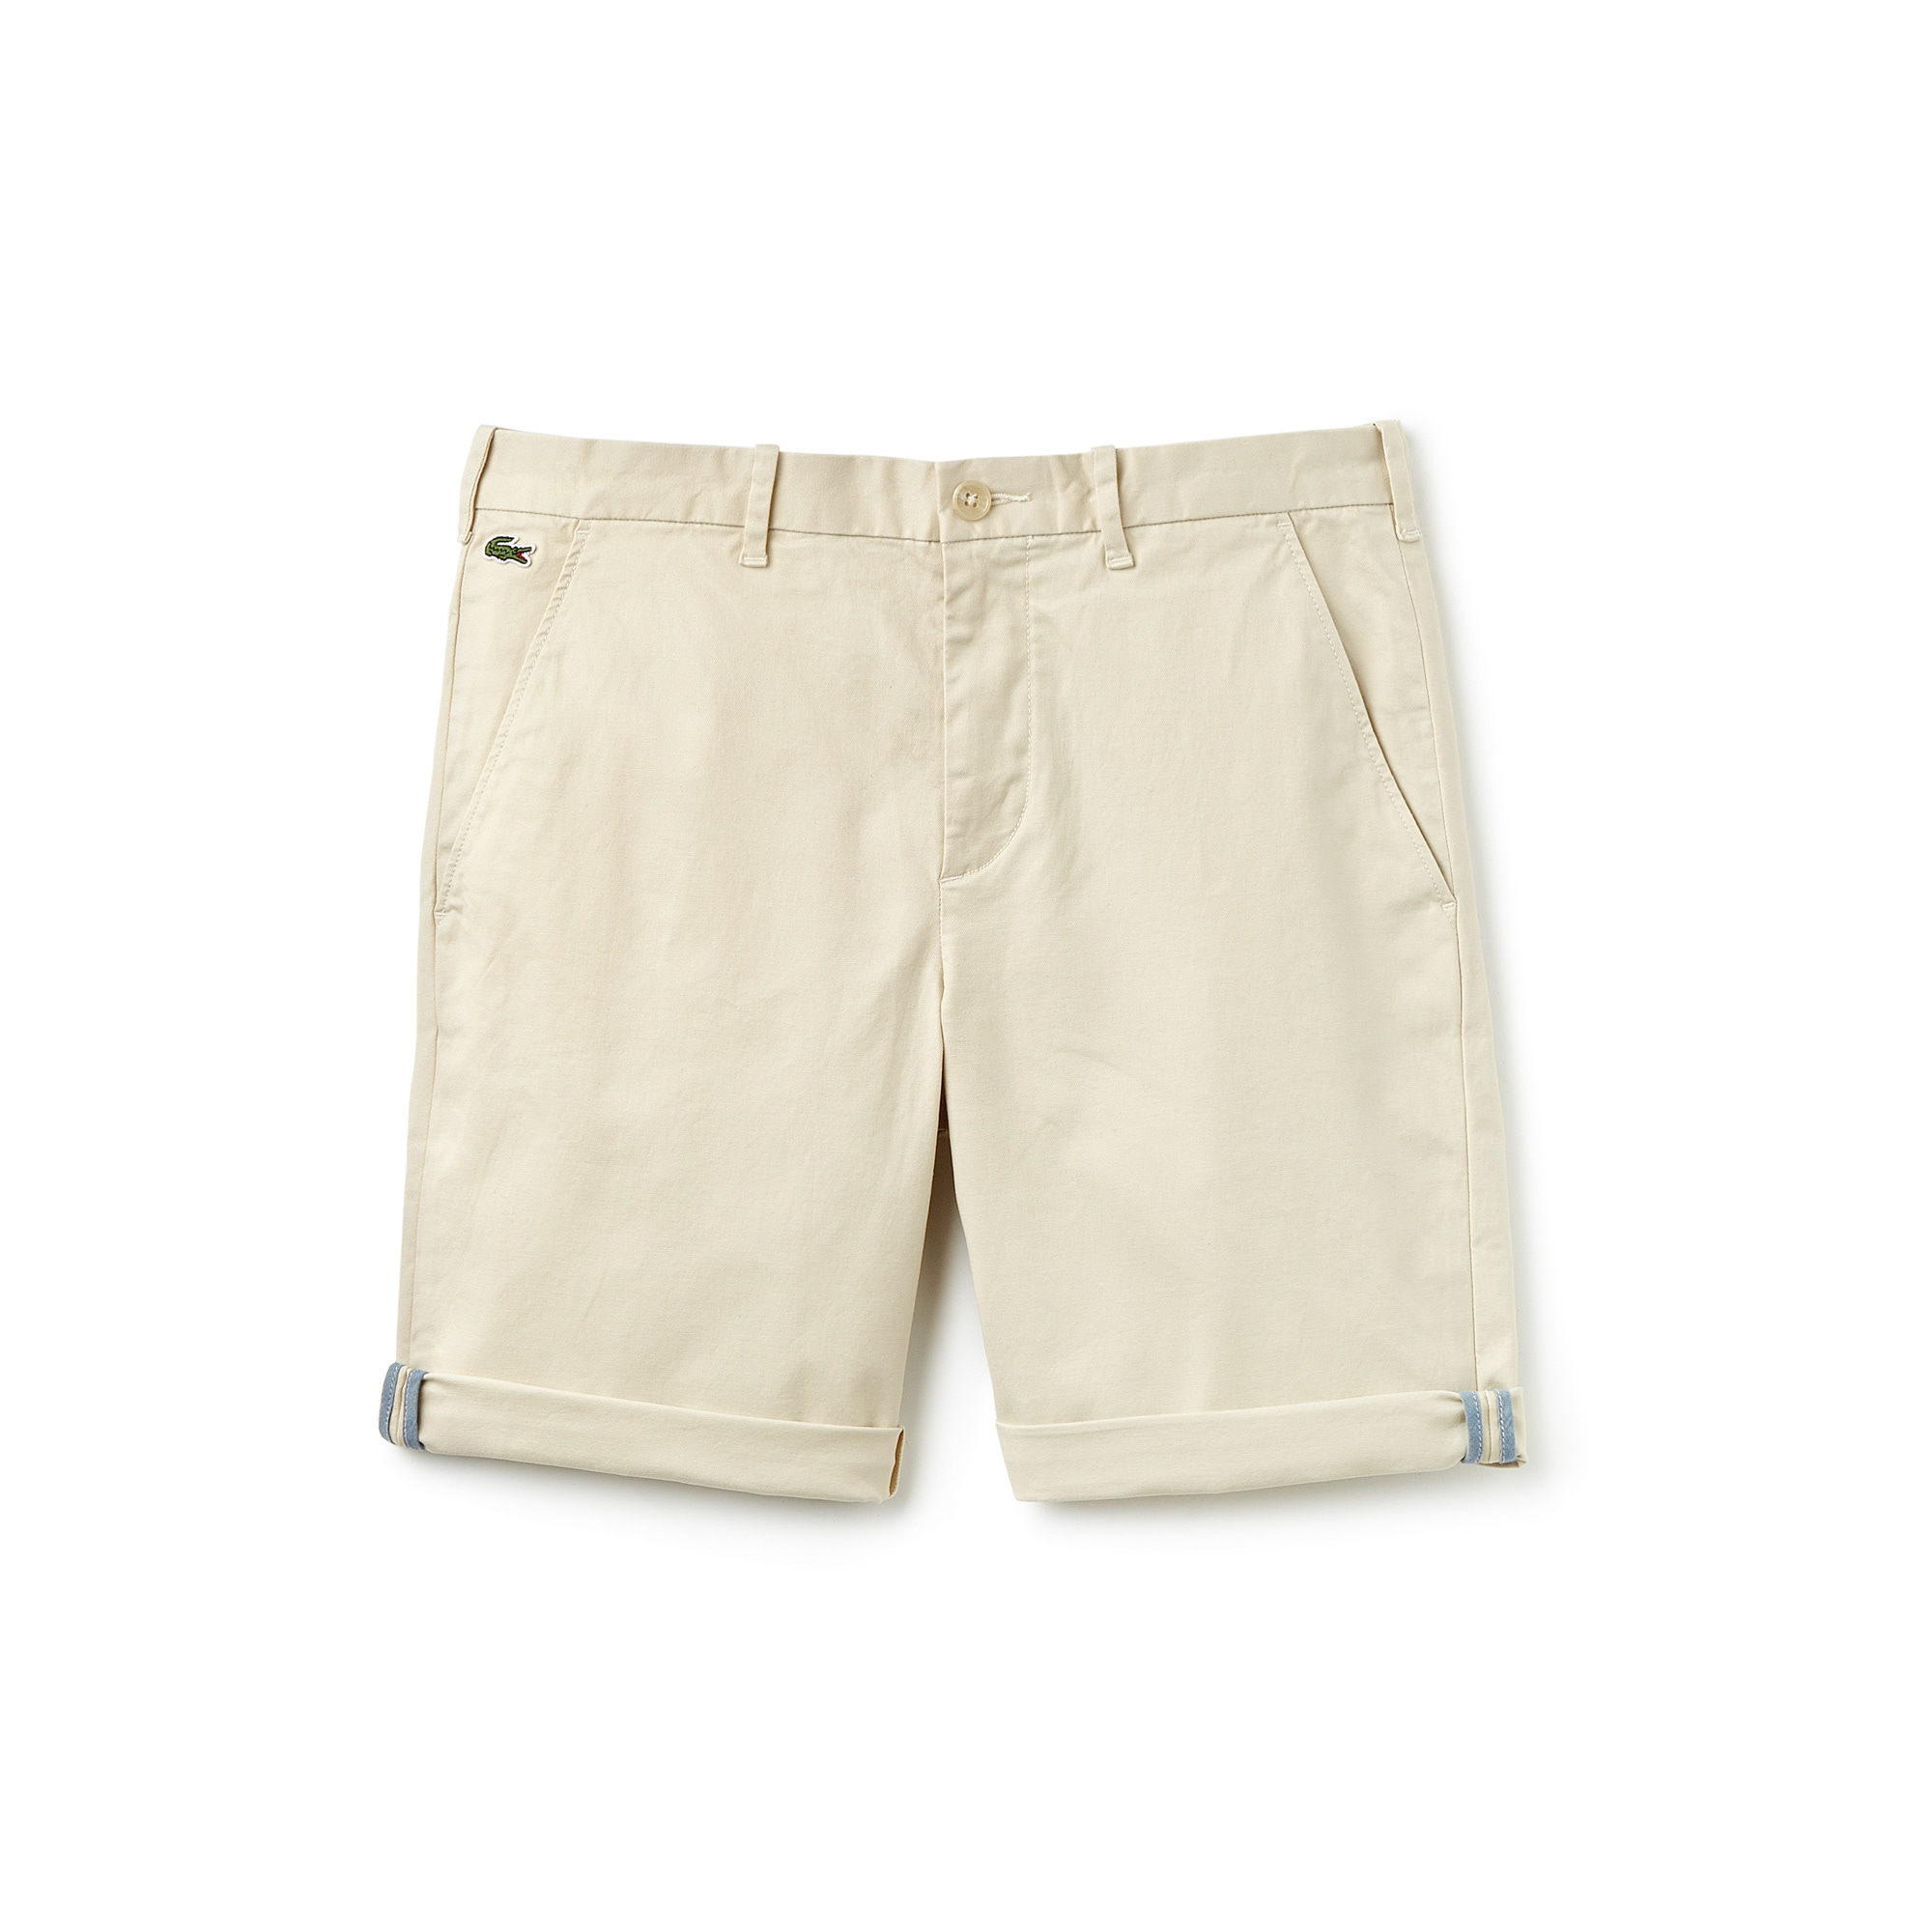 Men's Lacoste LIVE Stretch Cotton Twill Chino Cut Bermuda Shorts